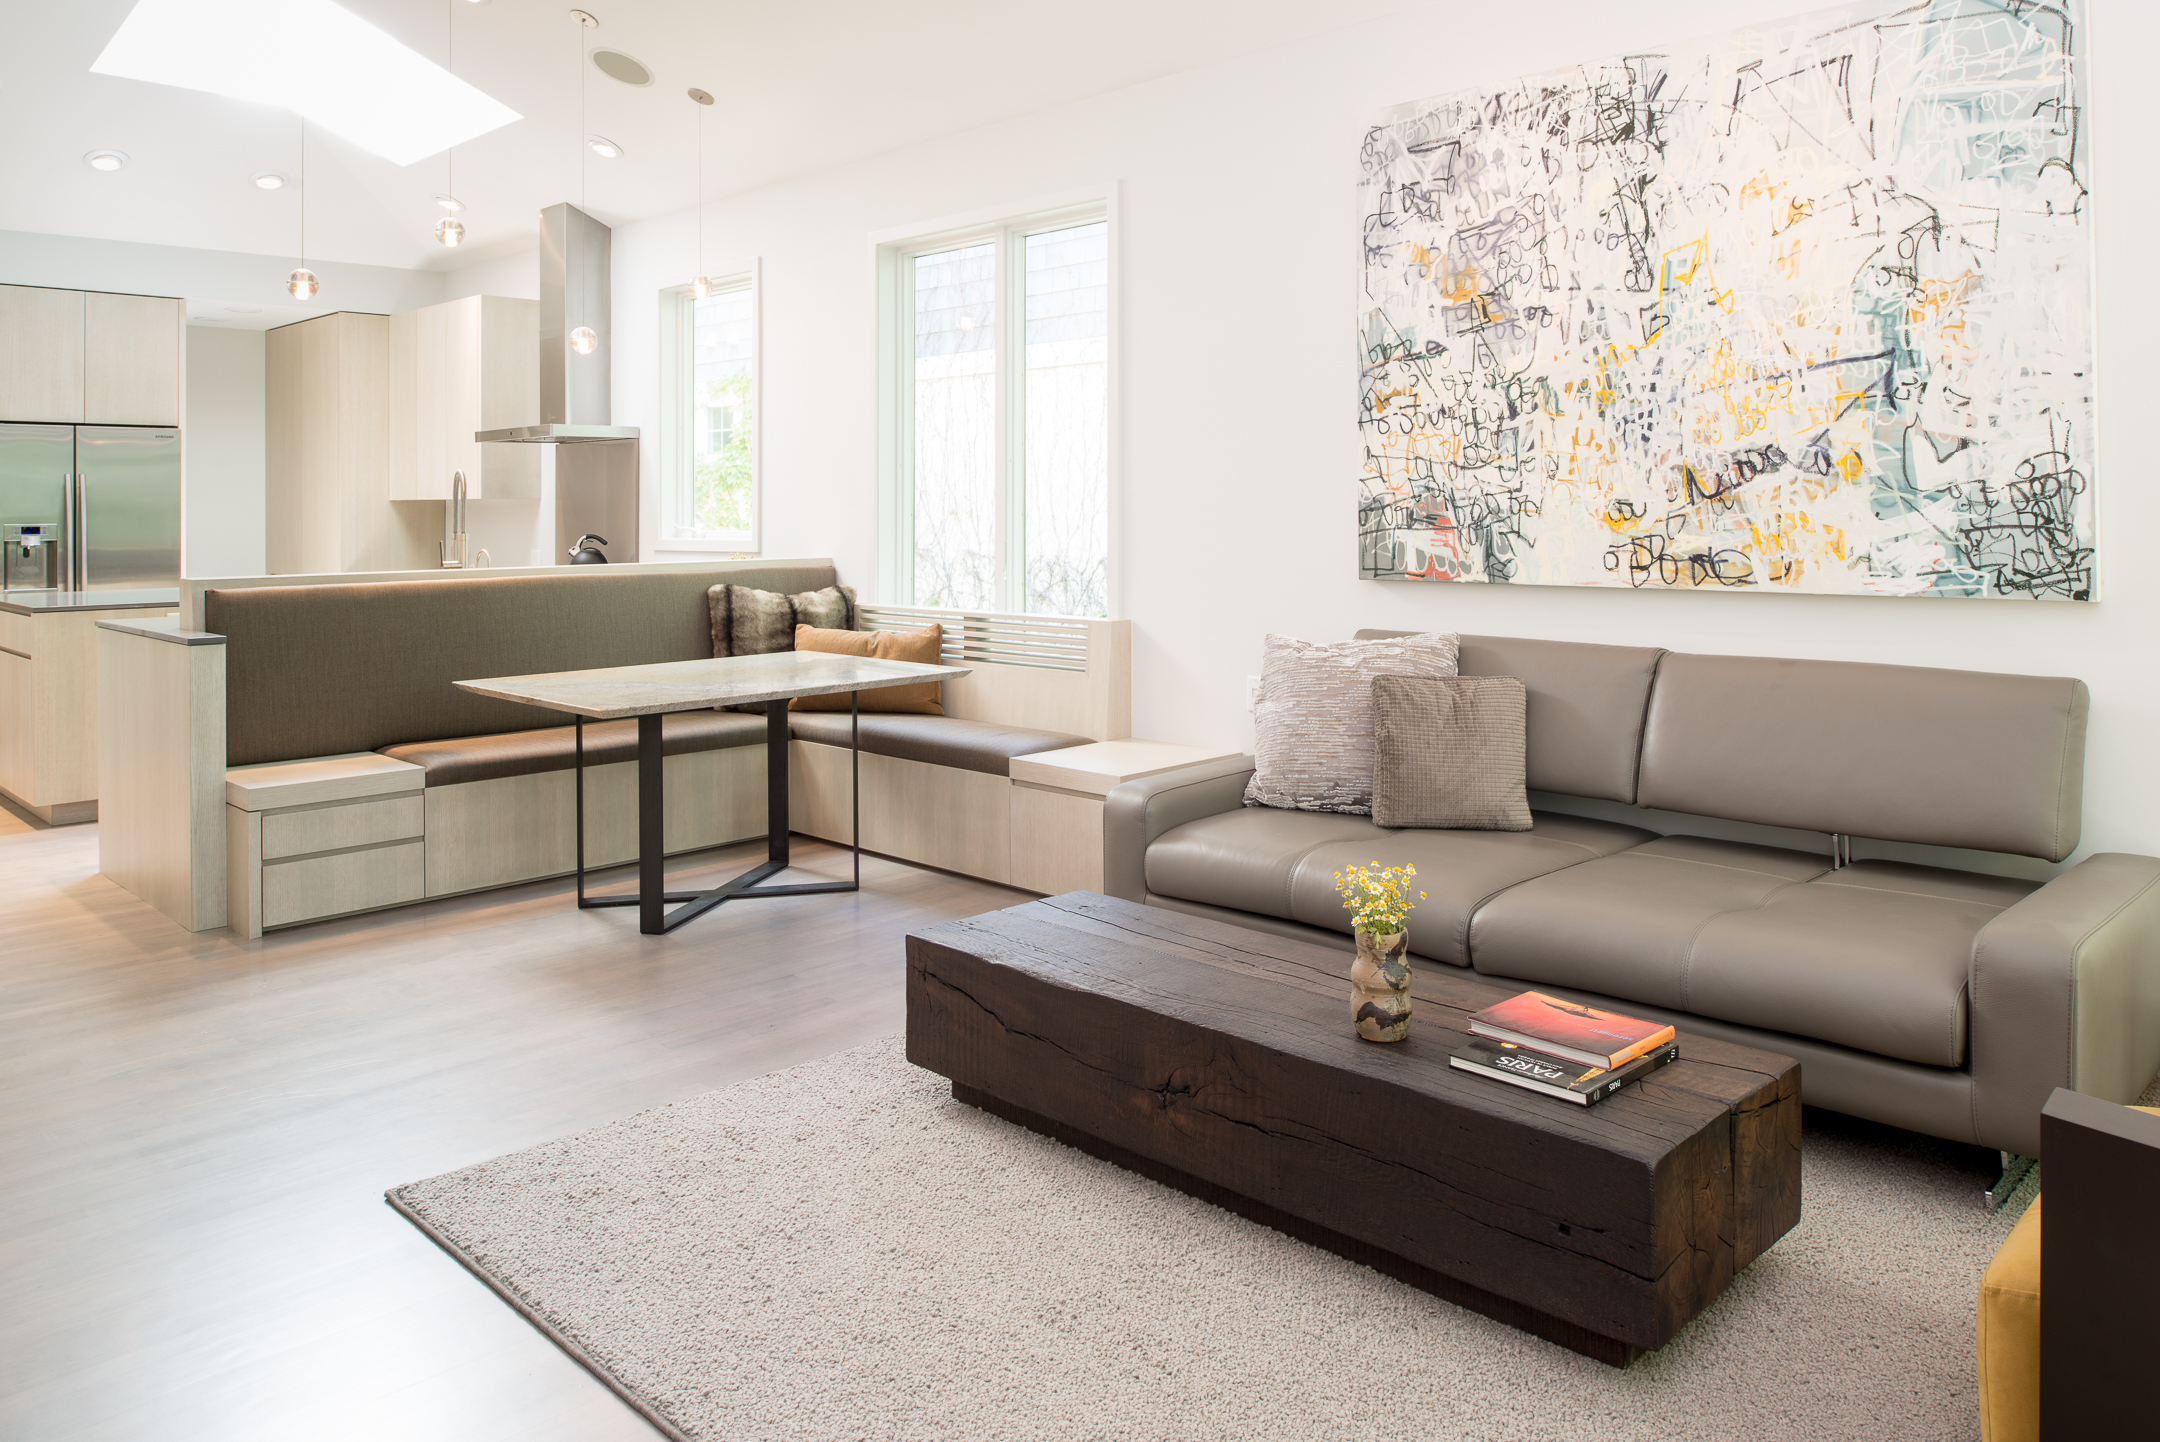 Modern living room open to kitchen and dining space